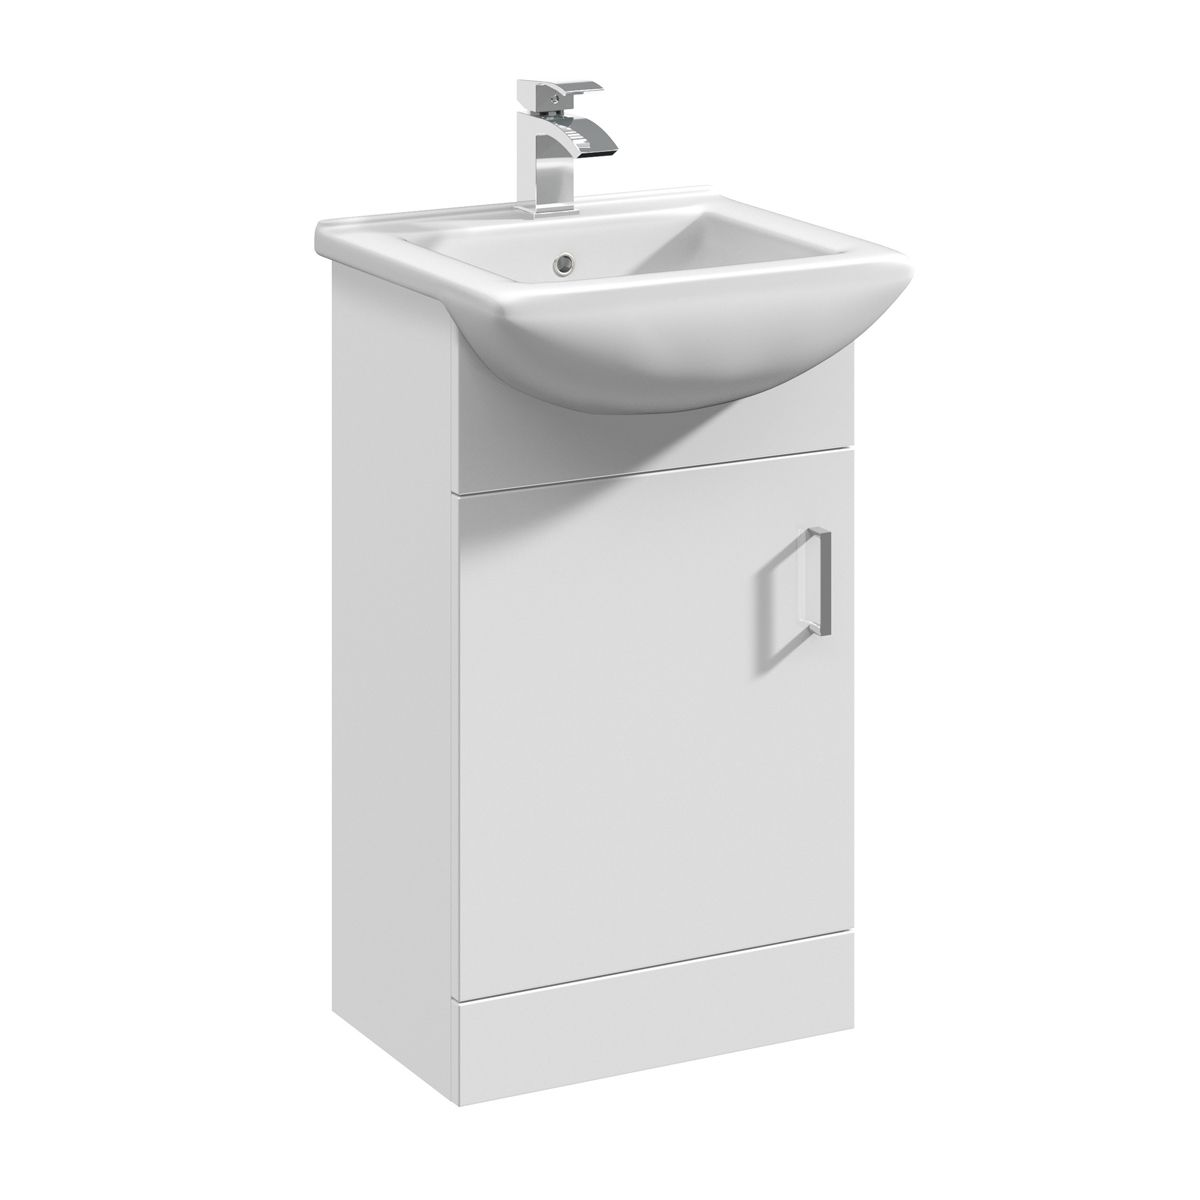 Nuie Deluxe High Gloss White Vanity Unit 450mm